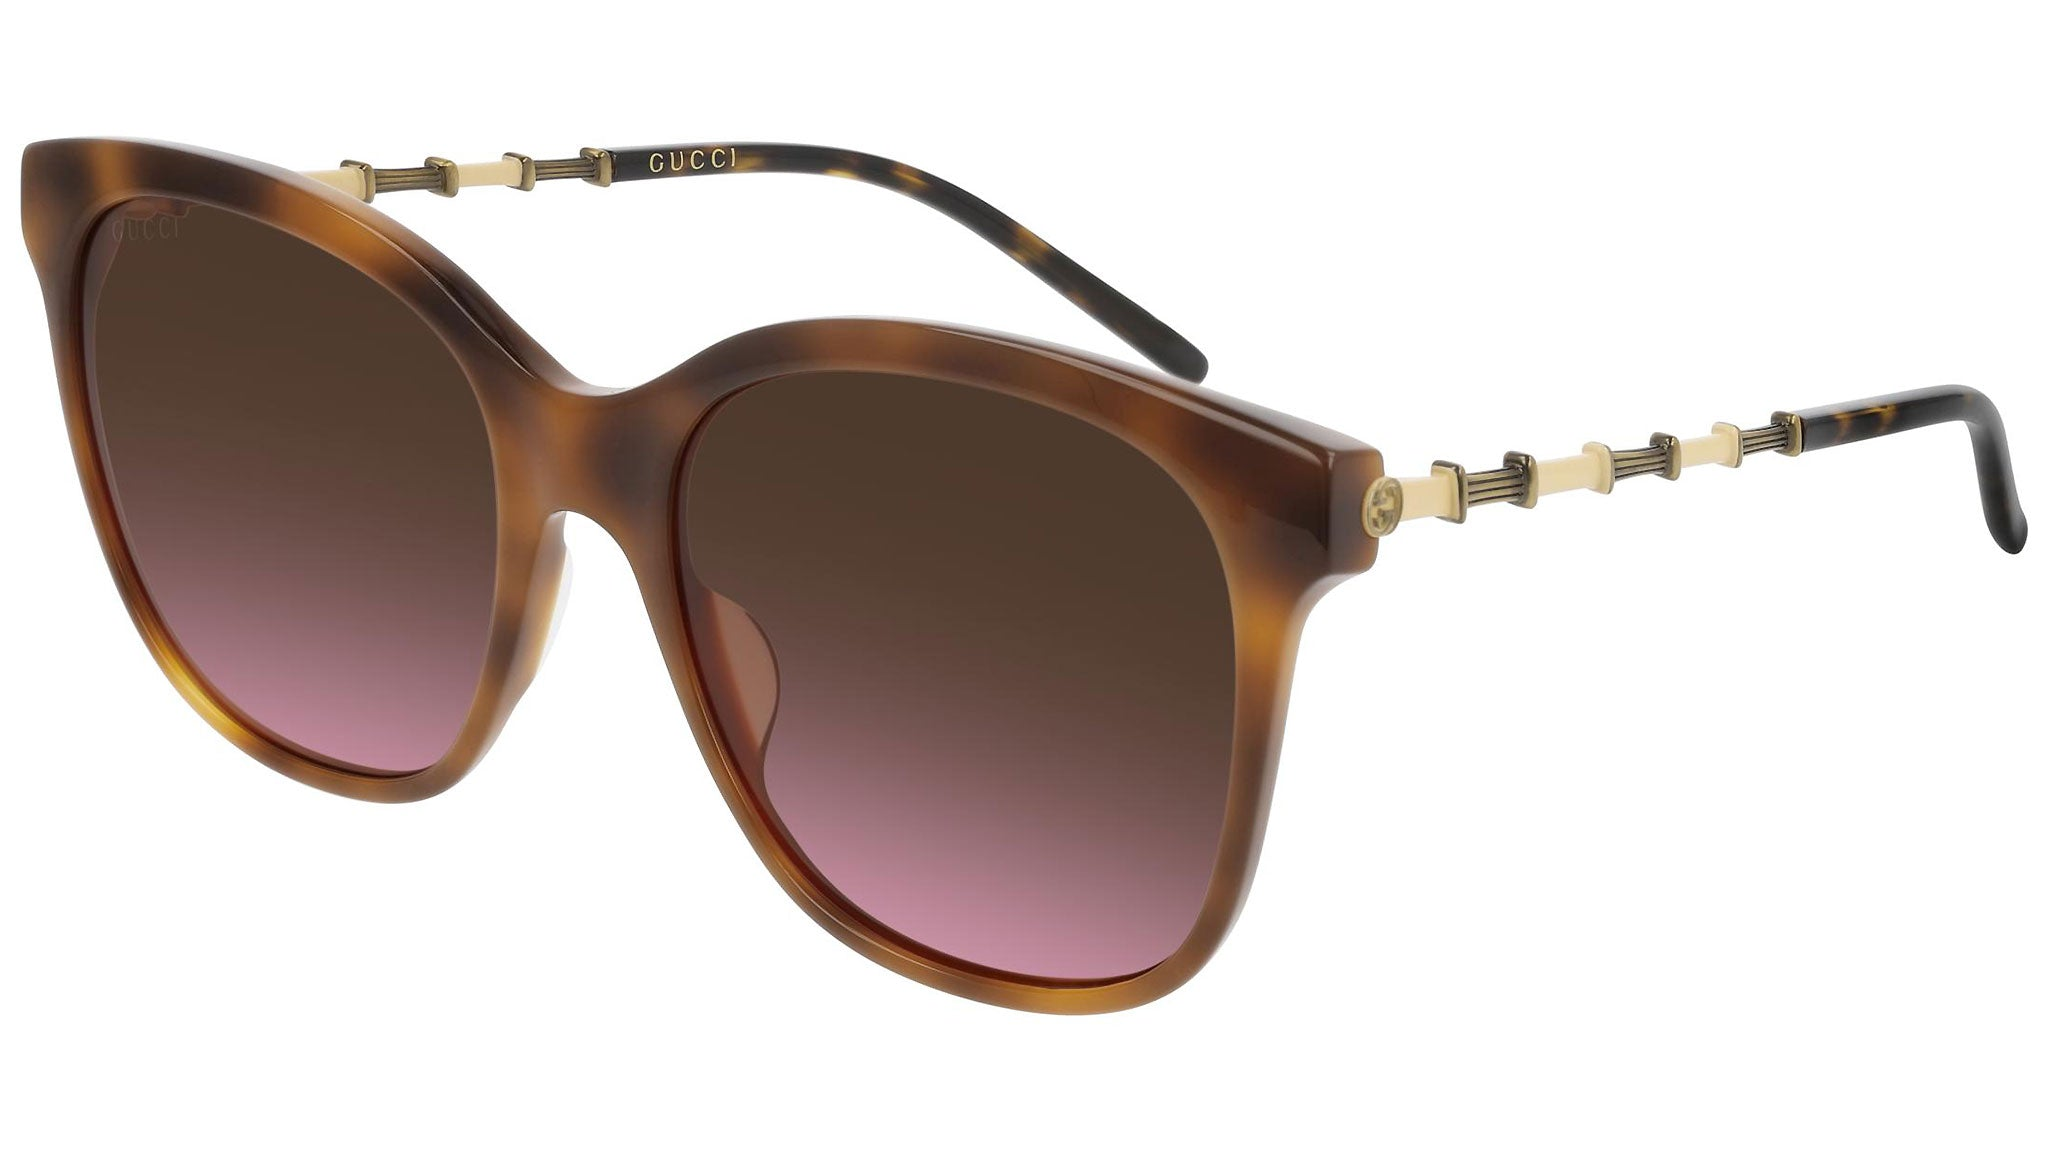 GG0654S light havana and brown/nude--eye-oo.it